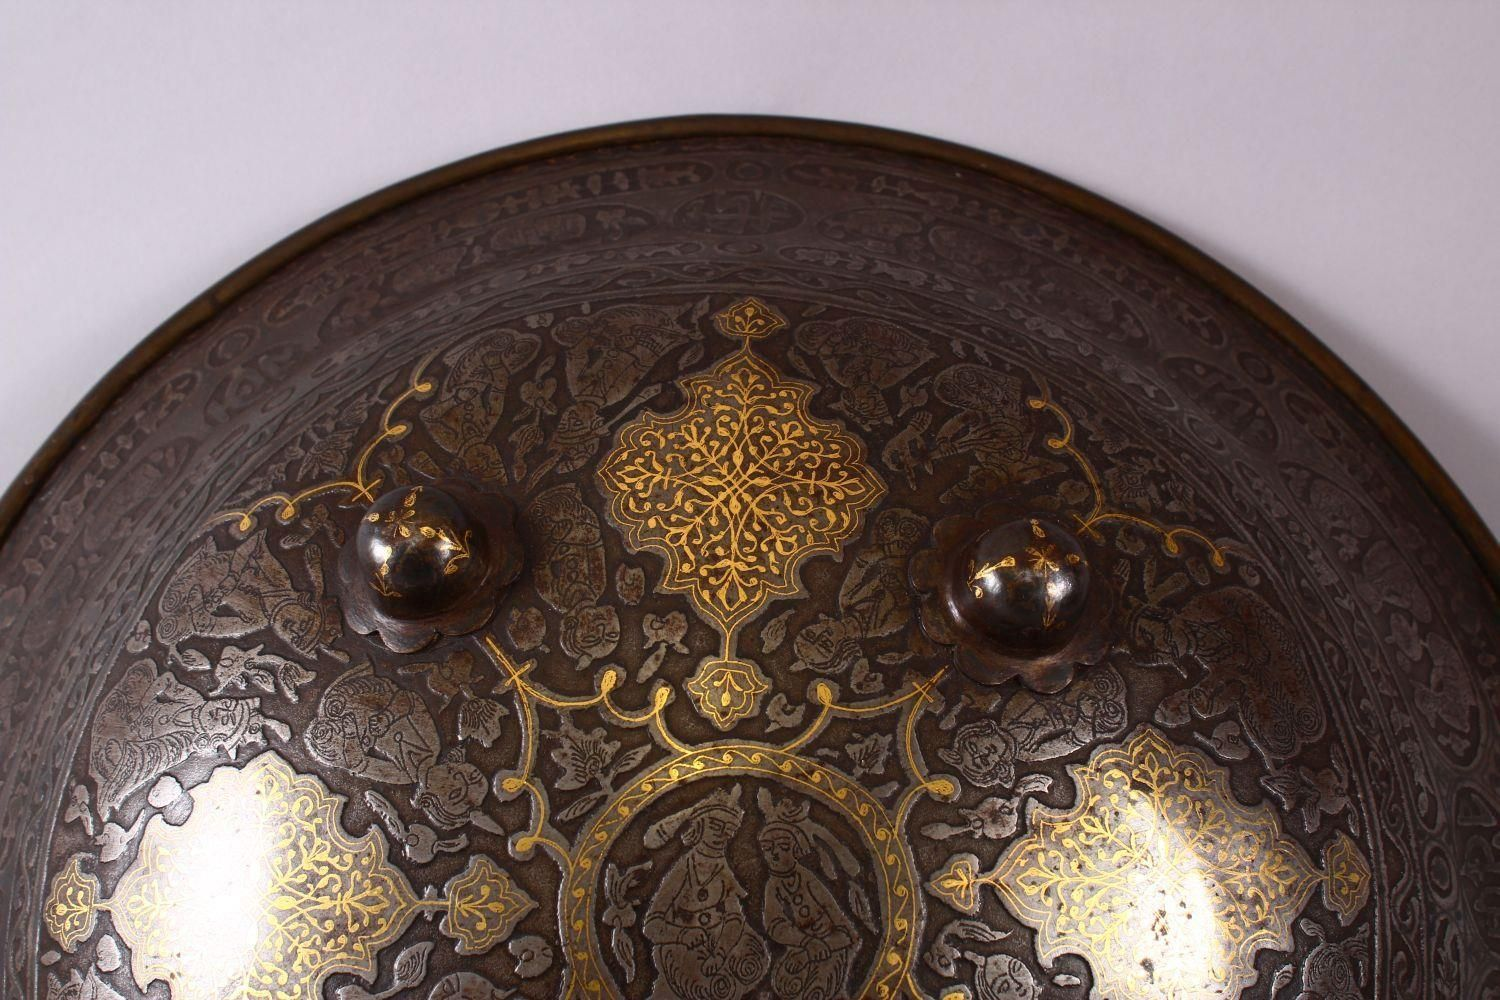 A LARGE 19TH CENTURY PERSIAN GILT DECORATED STEEL SHIELD, with carved decoration of figures, bands - Image 6 of 12